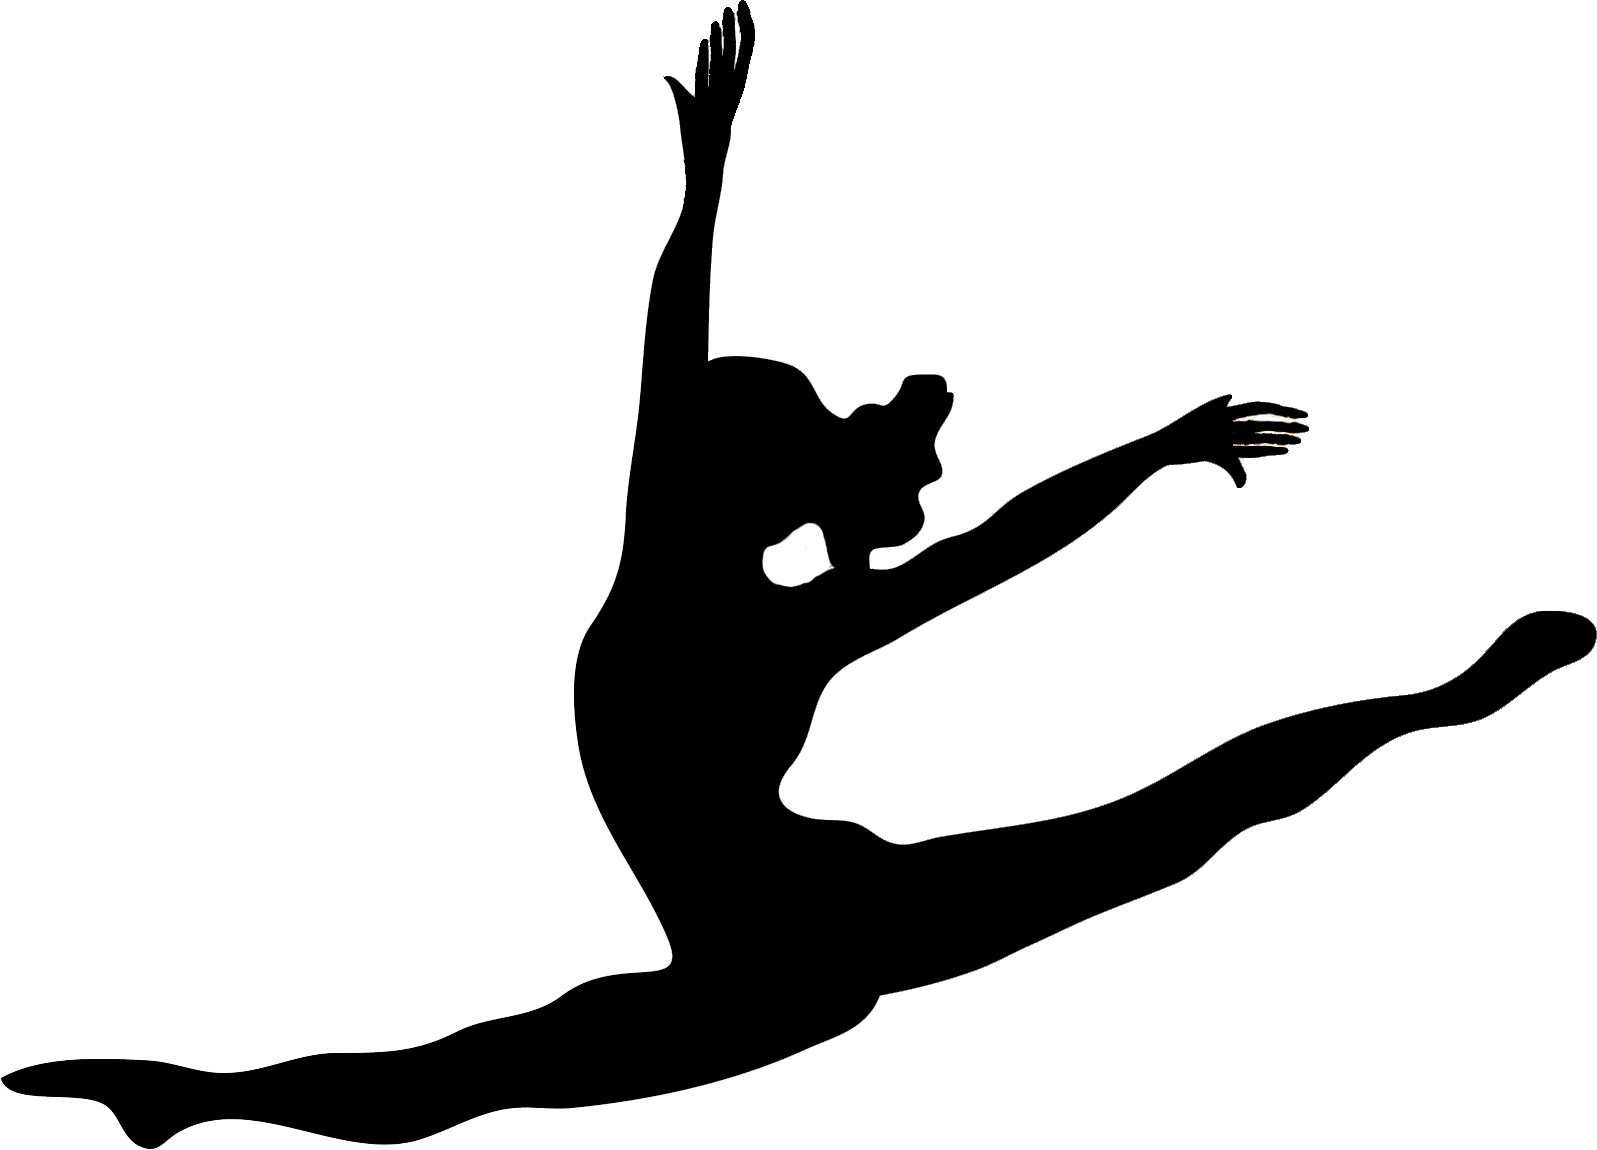 Dancer clipart logo. Joanne s dance center